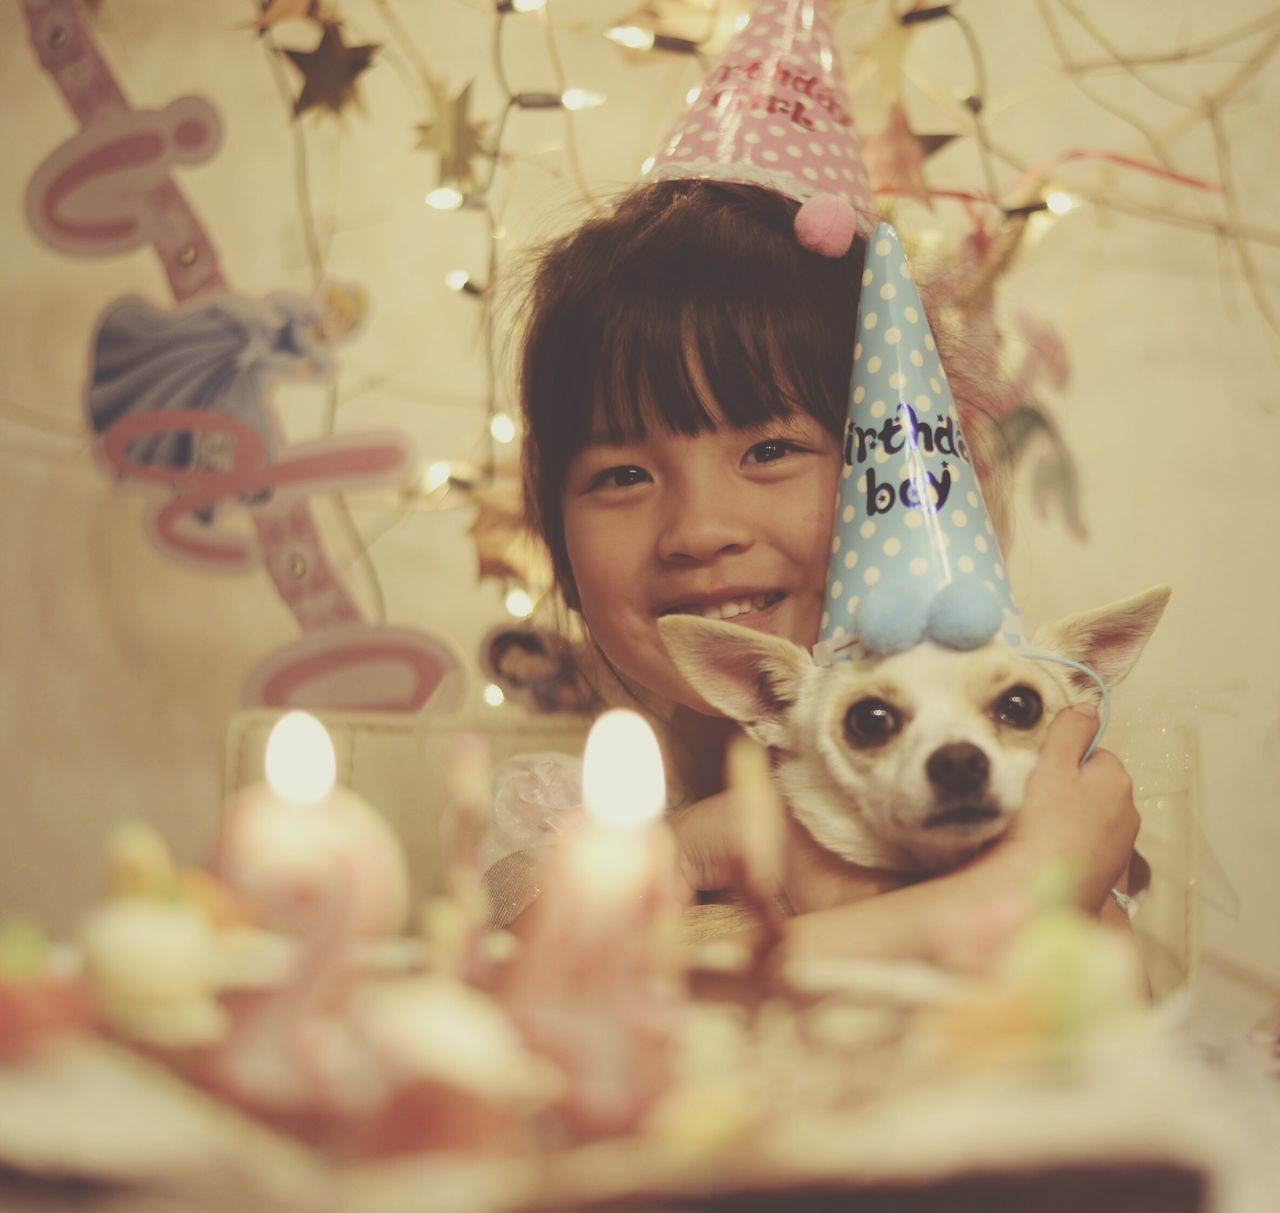 Beautiful stock photos of geburtstag, one person, real people, looking at camera, childhood